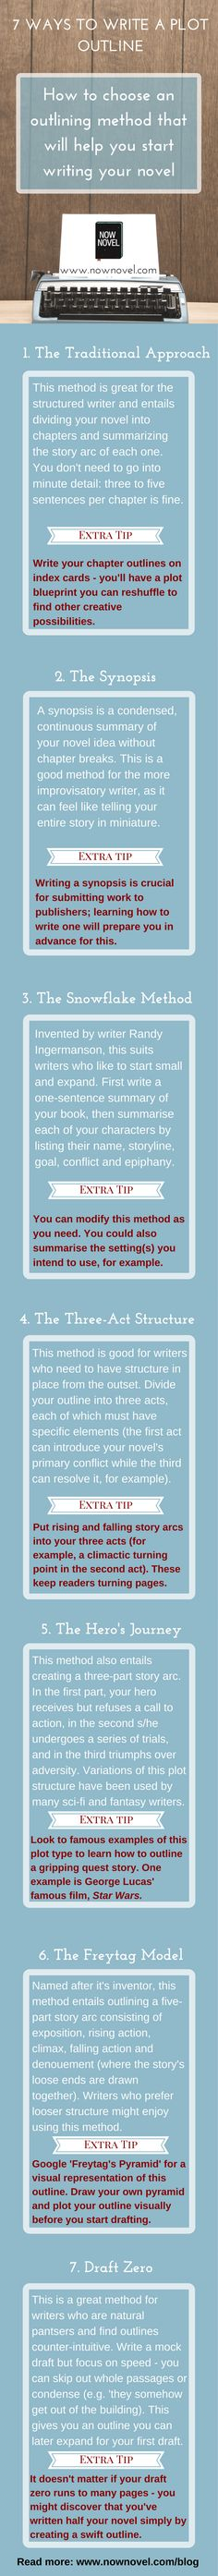 We made a handy #infographic to show you 7 ways you can #write your #novel outline.